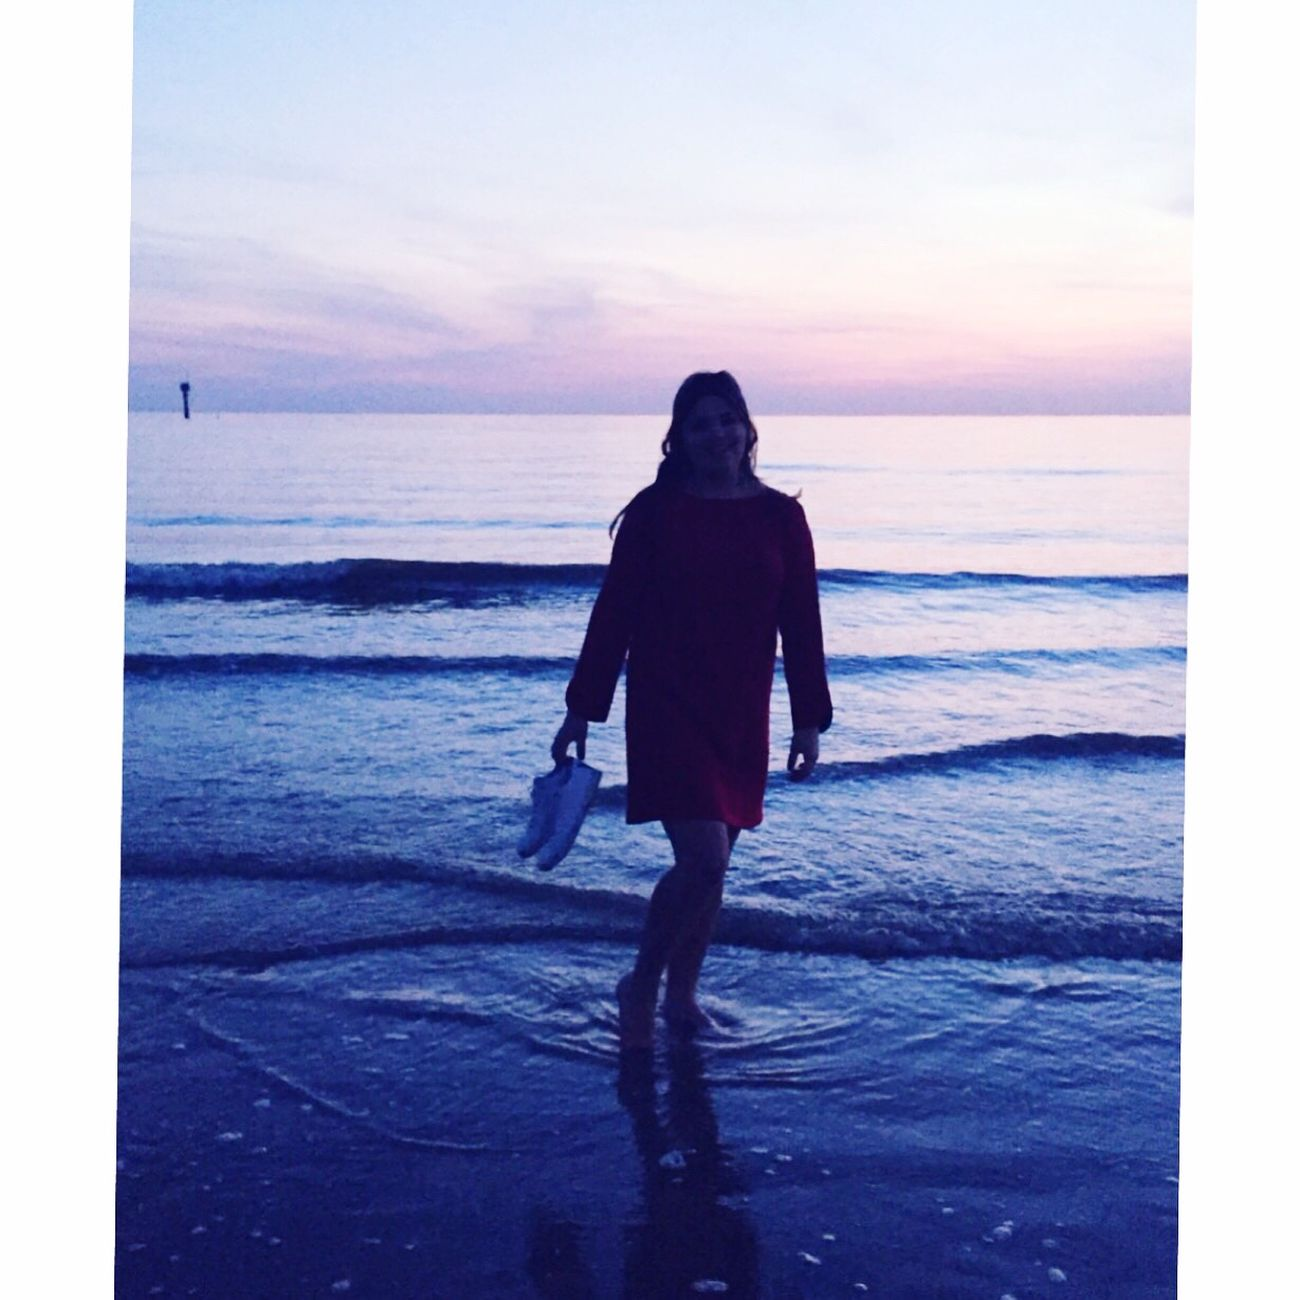 😍 Beach BelgianGirl Belgium Sunset Girl Sexygirl My Favorite Photo Beautifulsky Beautiful Sunset